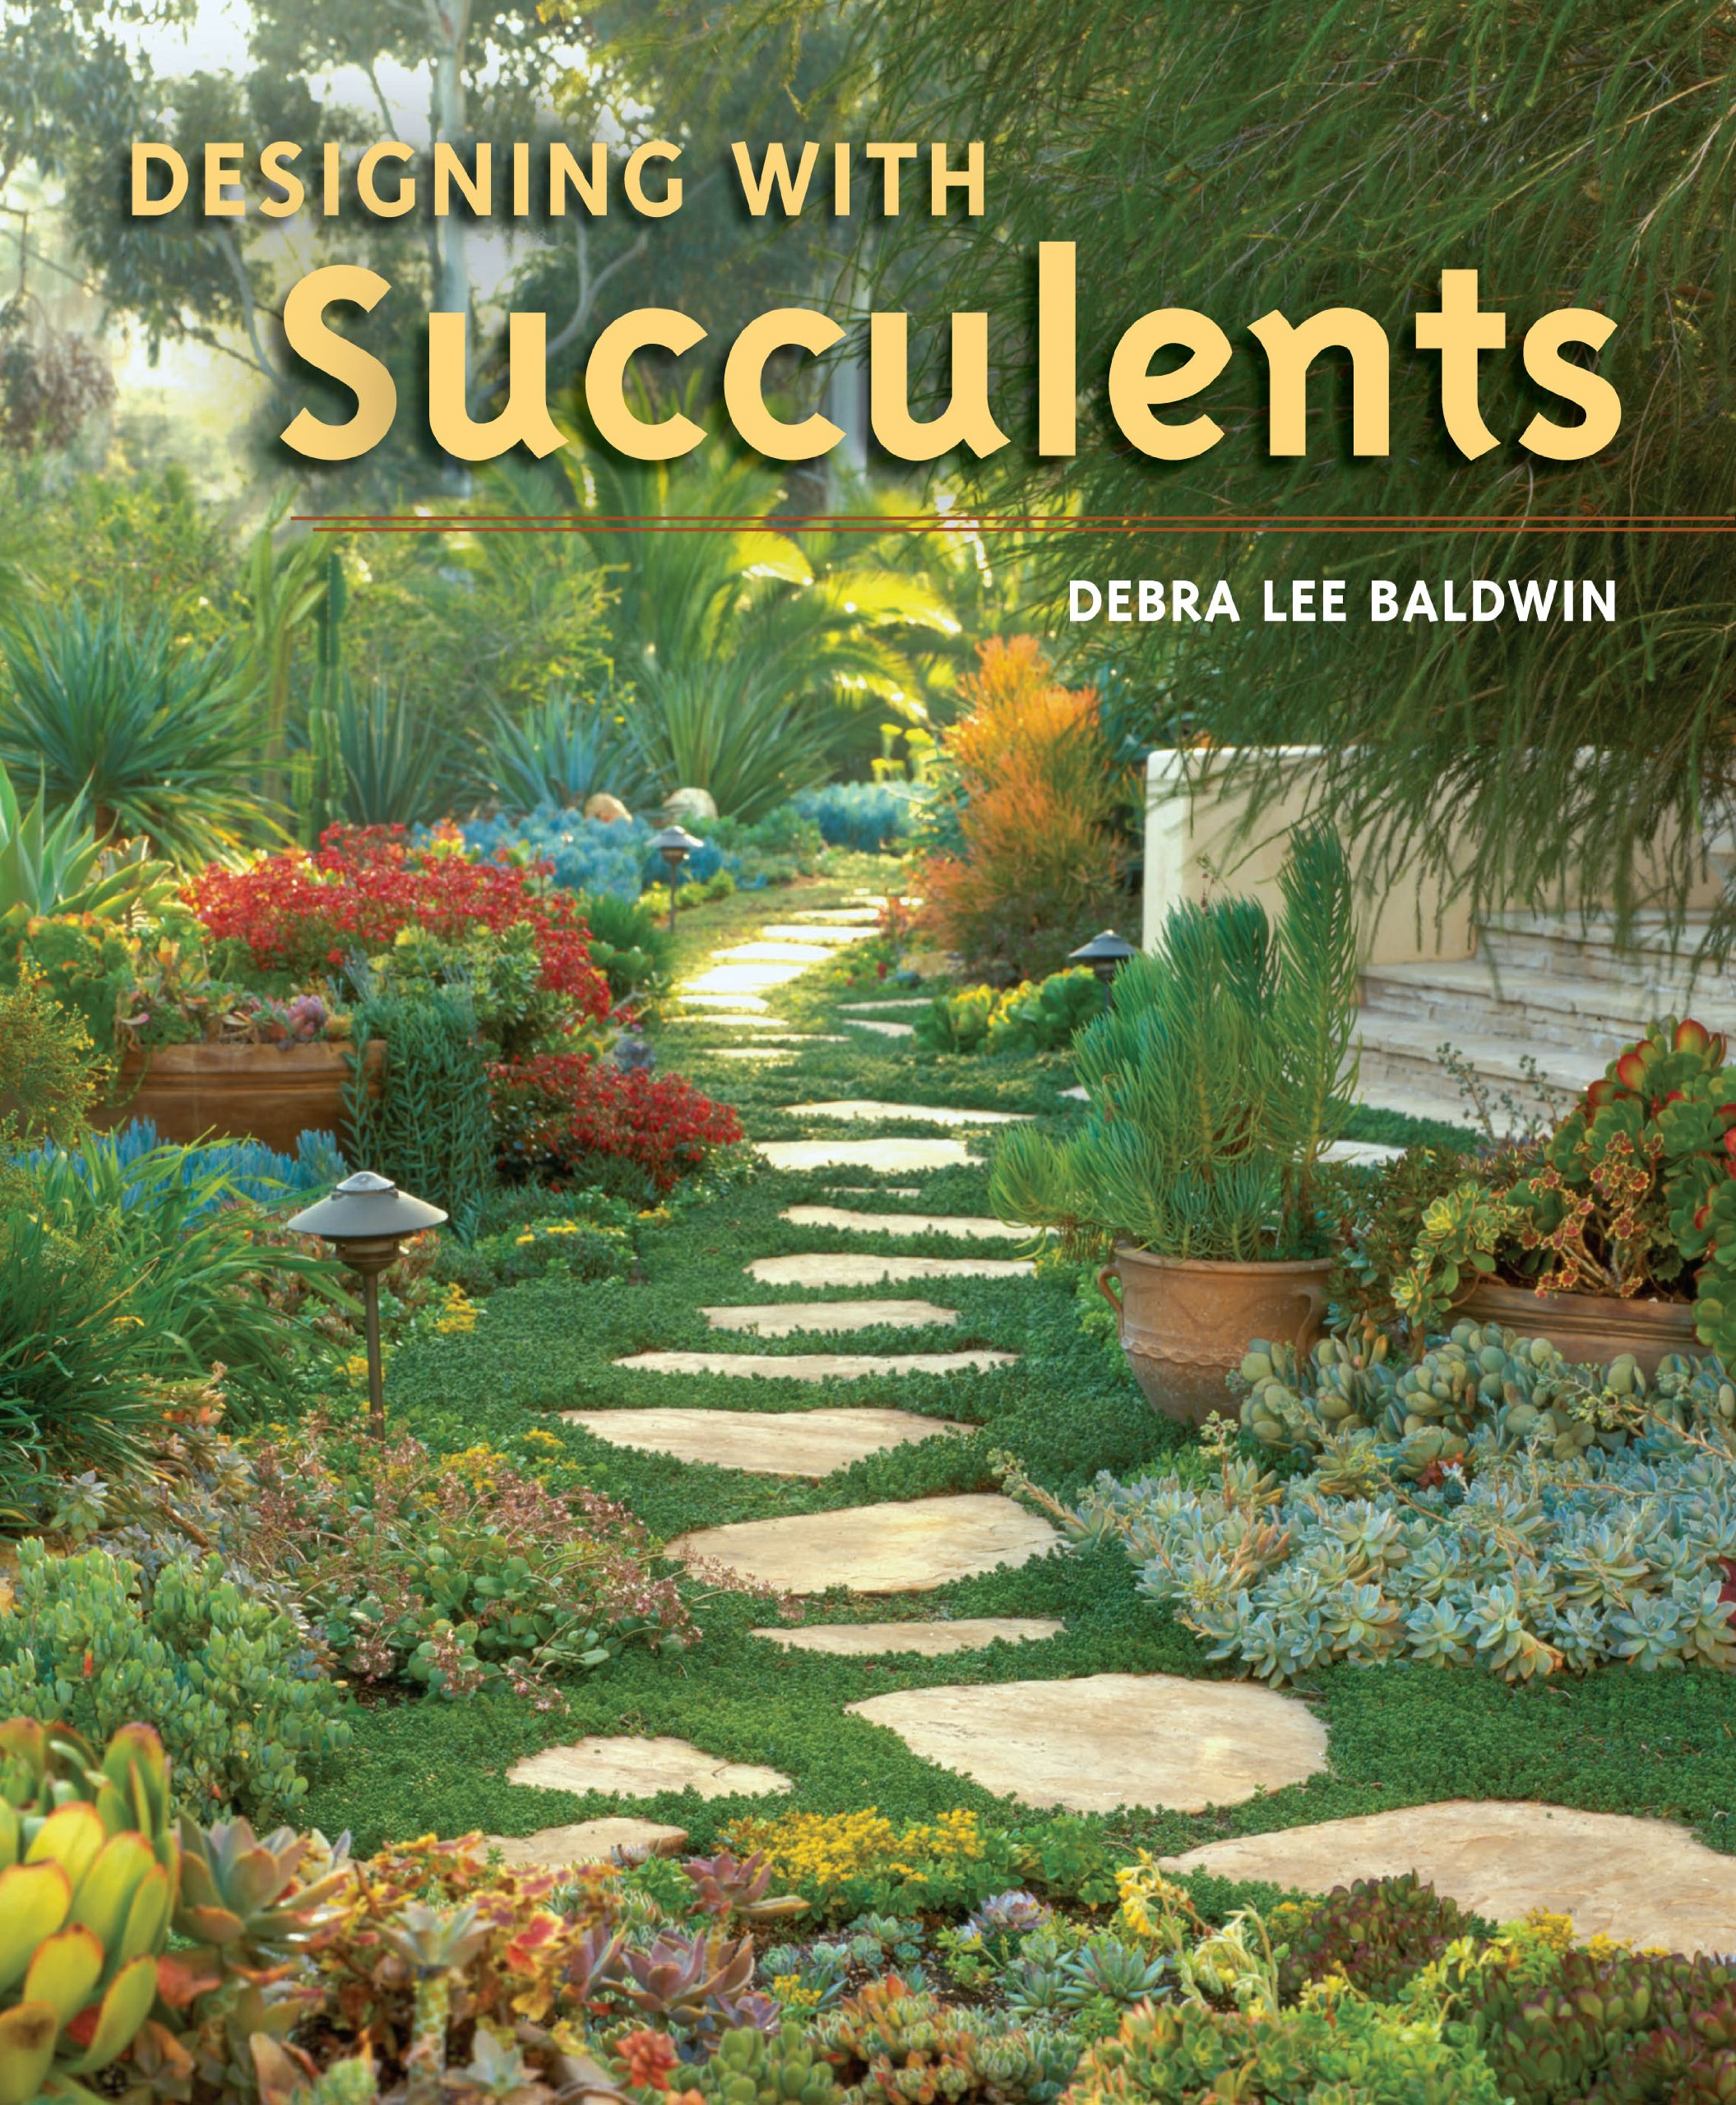 Designing With Succulents: Debra Lee Baldwin: 9780881928167: Amazon.com:  Books